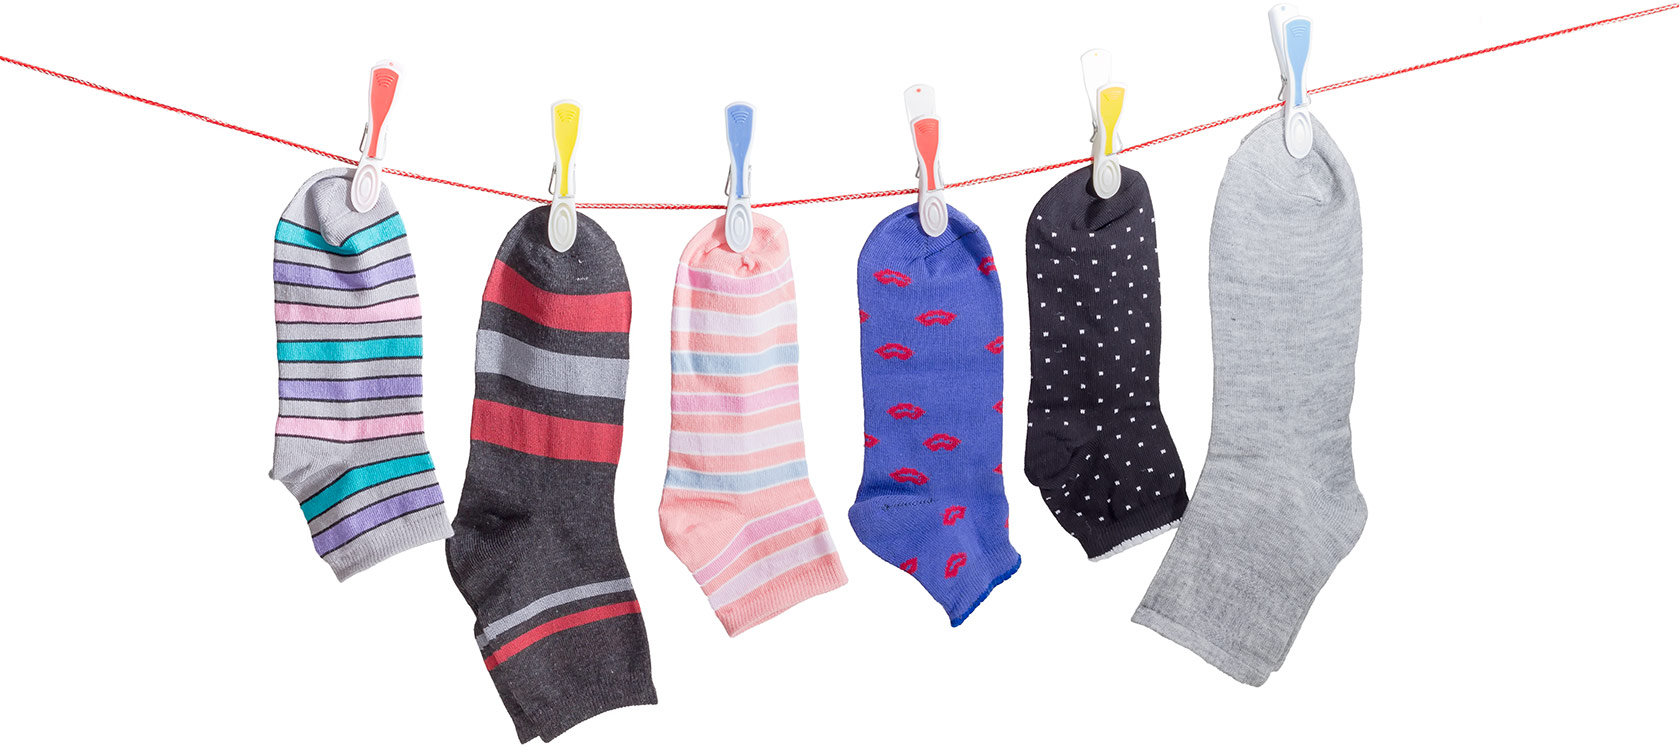 colorful socks on a clothes line